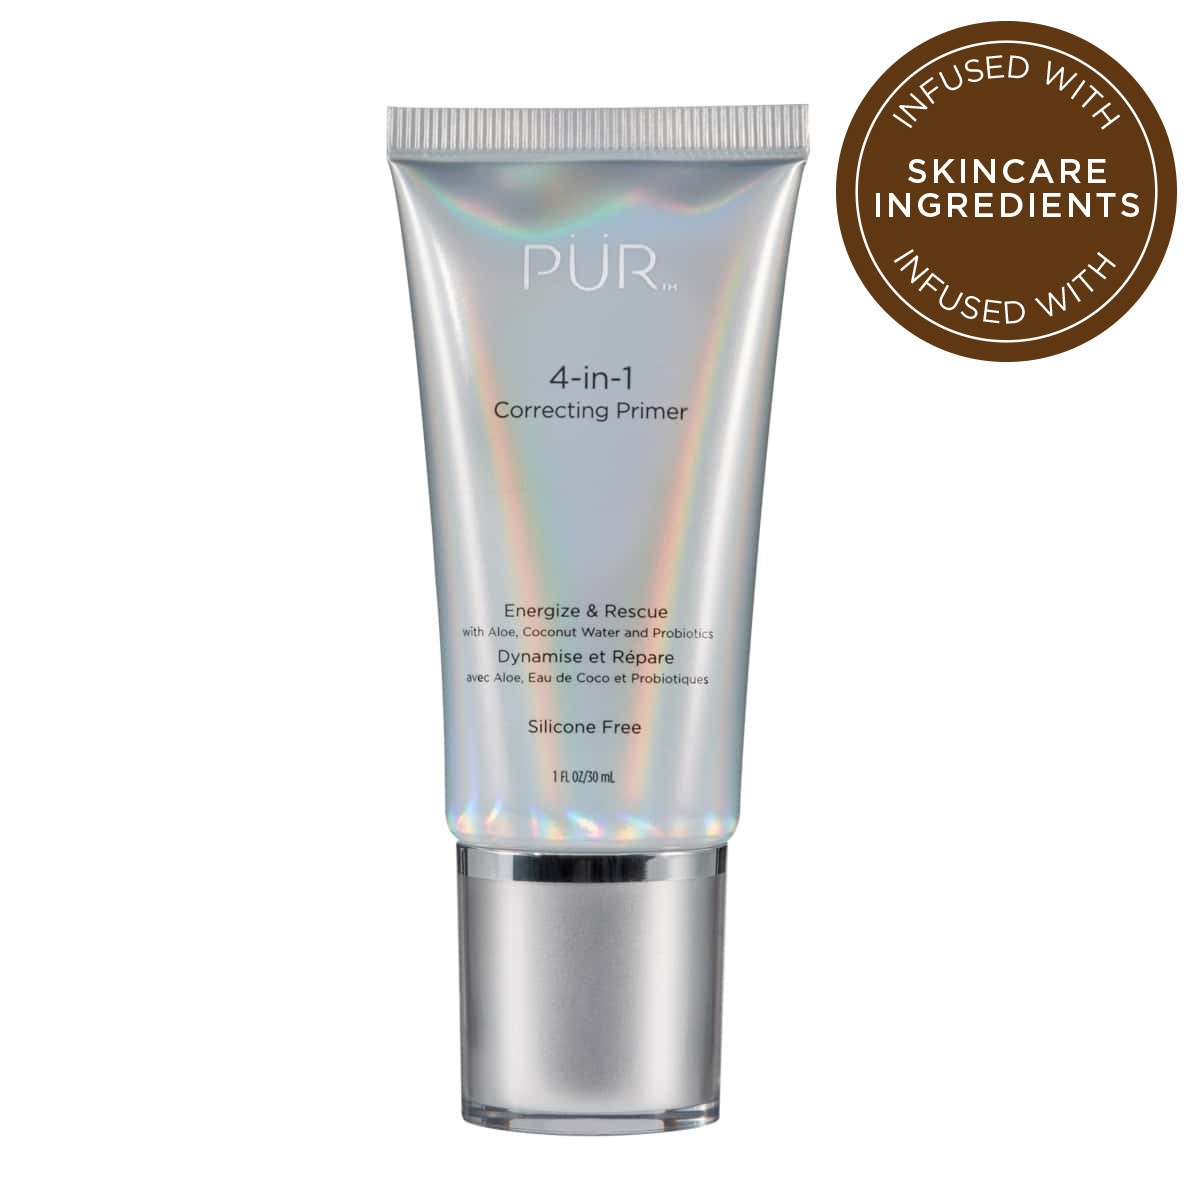 www.purcosmetics.com - 4-in-1 Correcting Primer Energize & Rescue